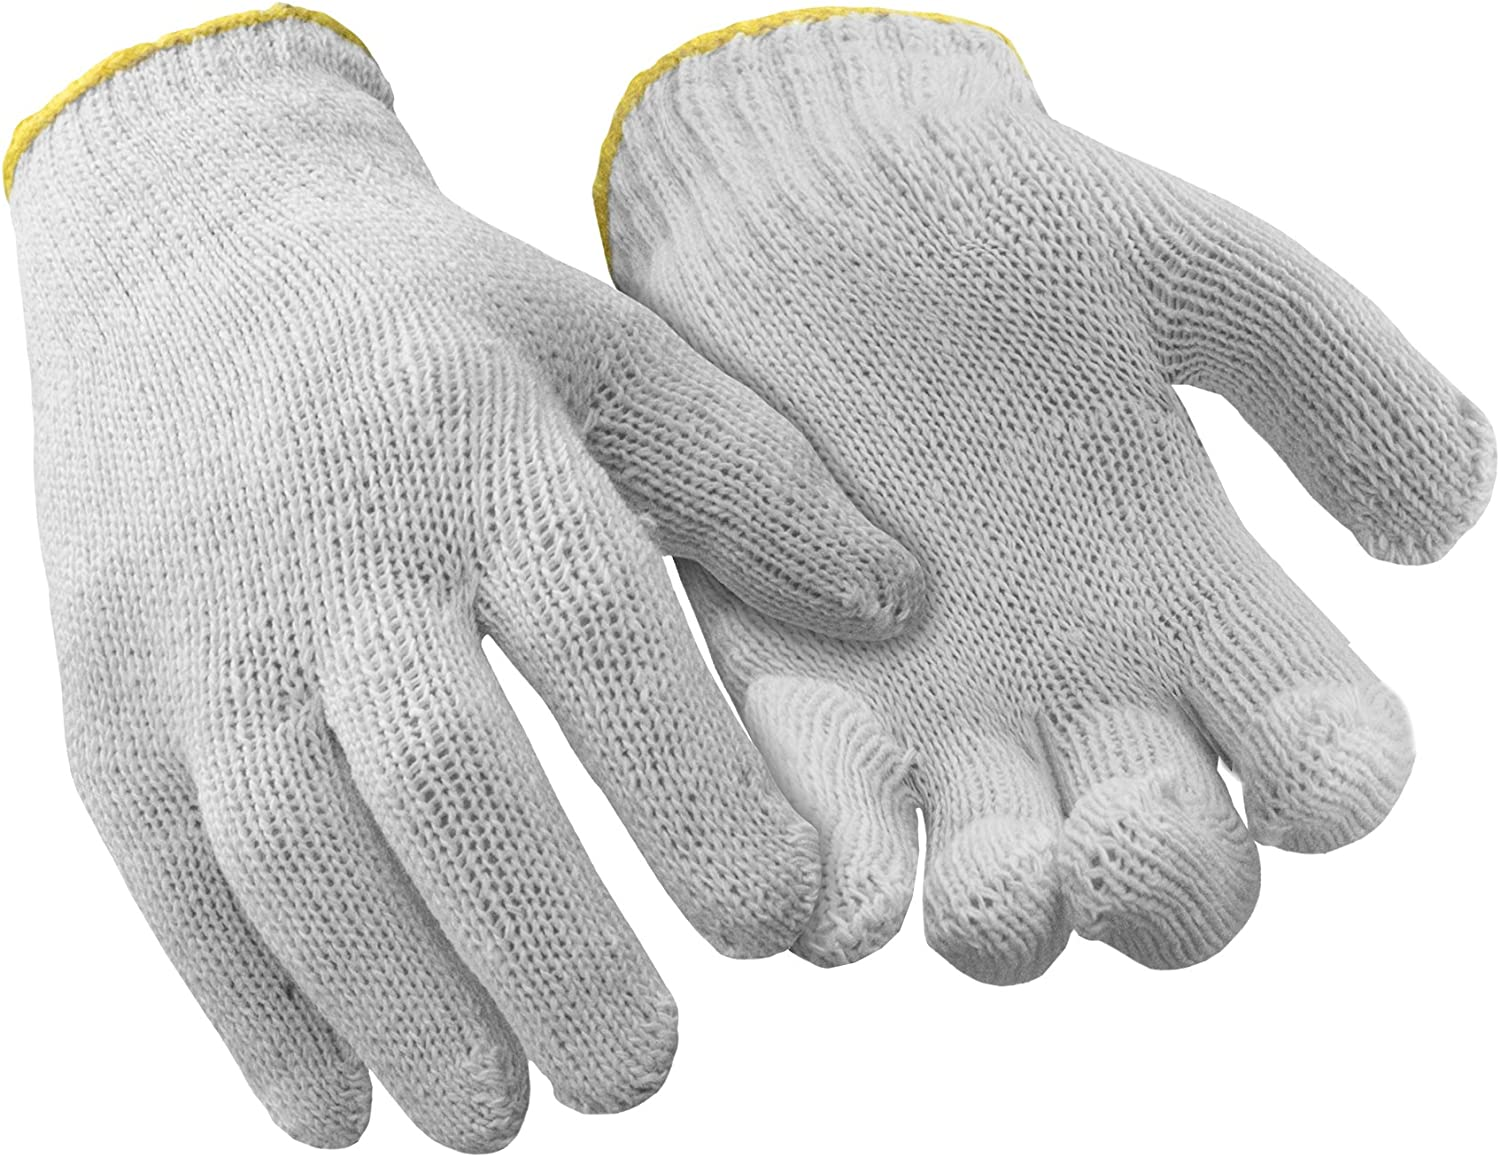 Natural, Small PACK OF 12 PAIRS RefrigiWear Midweight Poly//Cotton String Knit Glove Liners